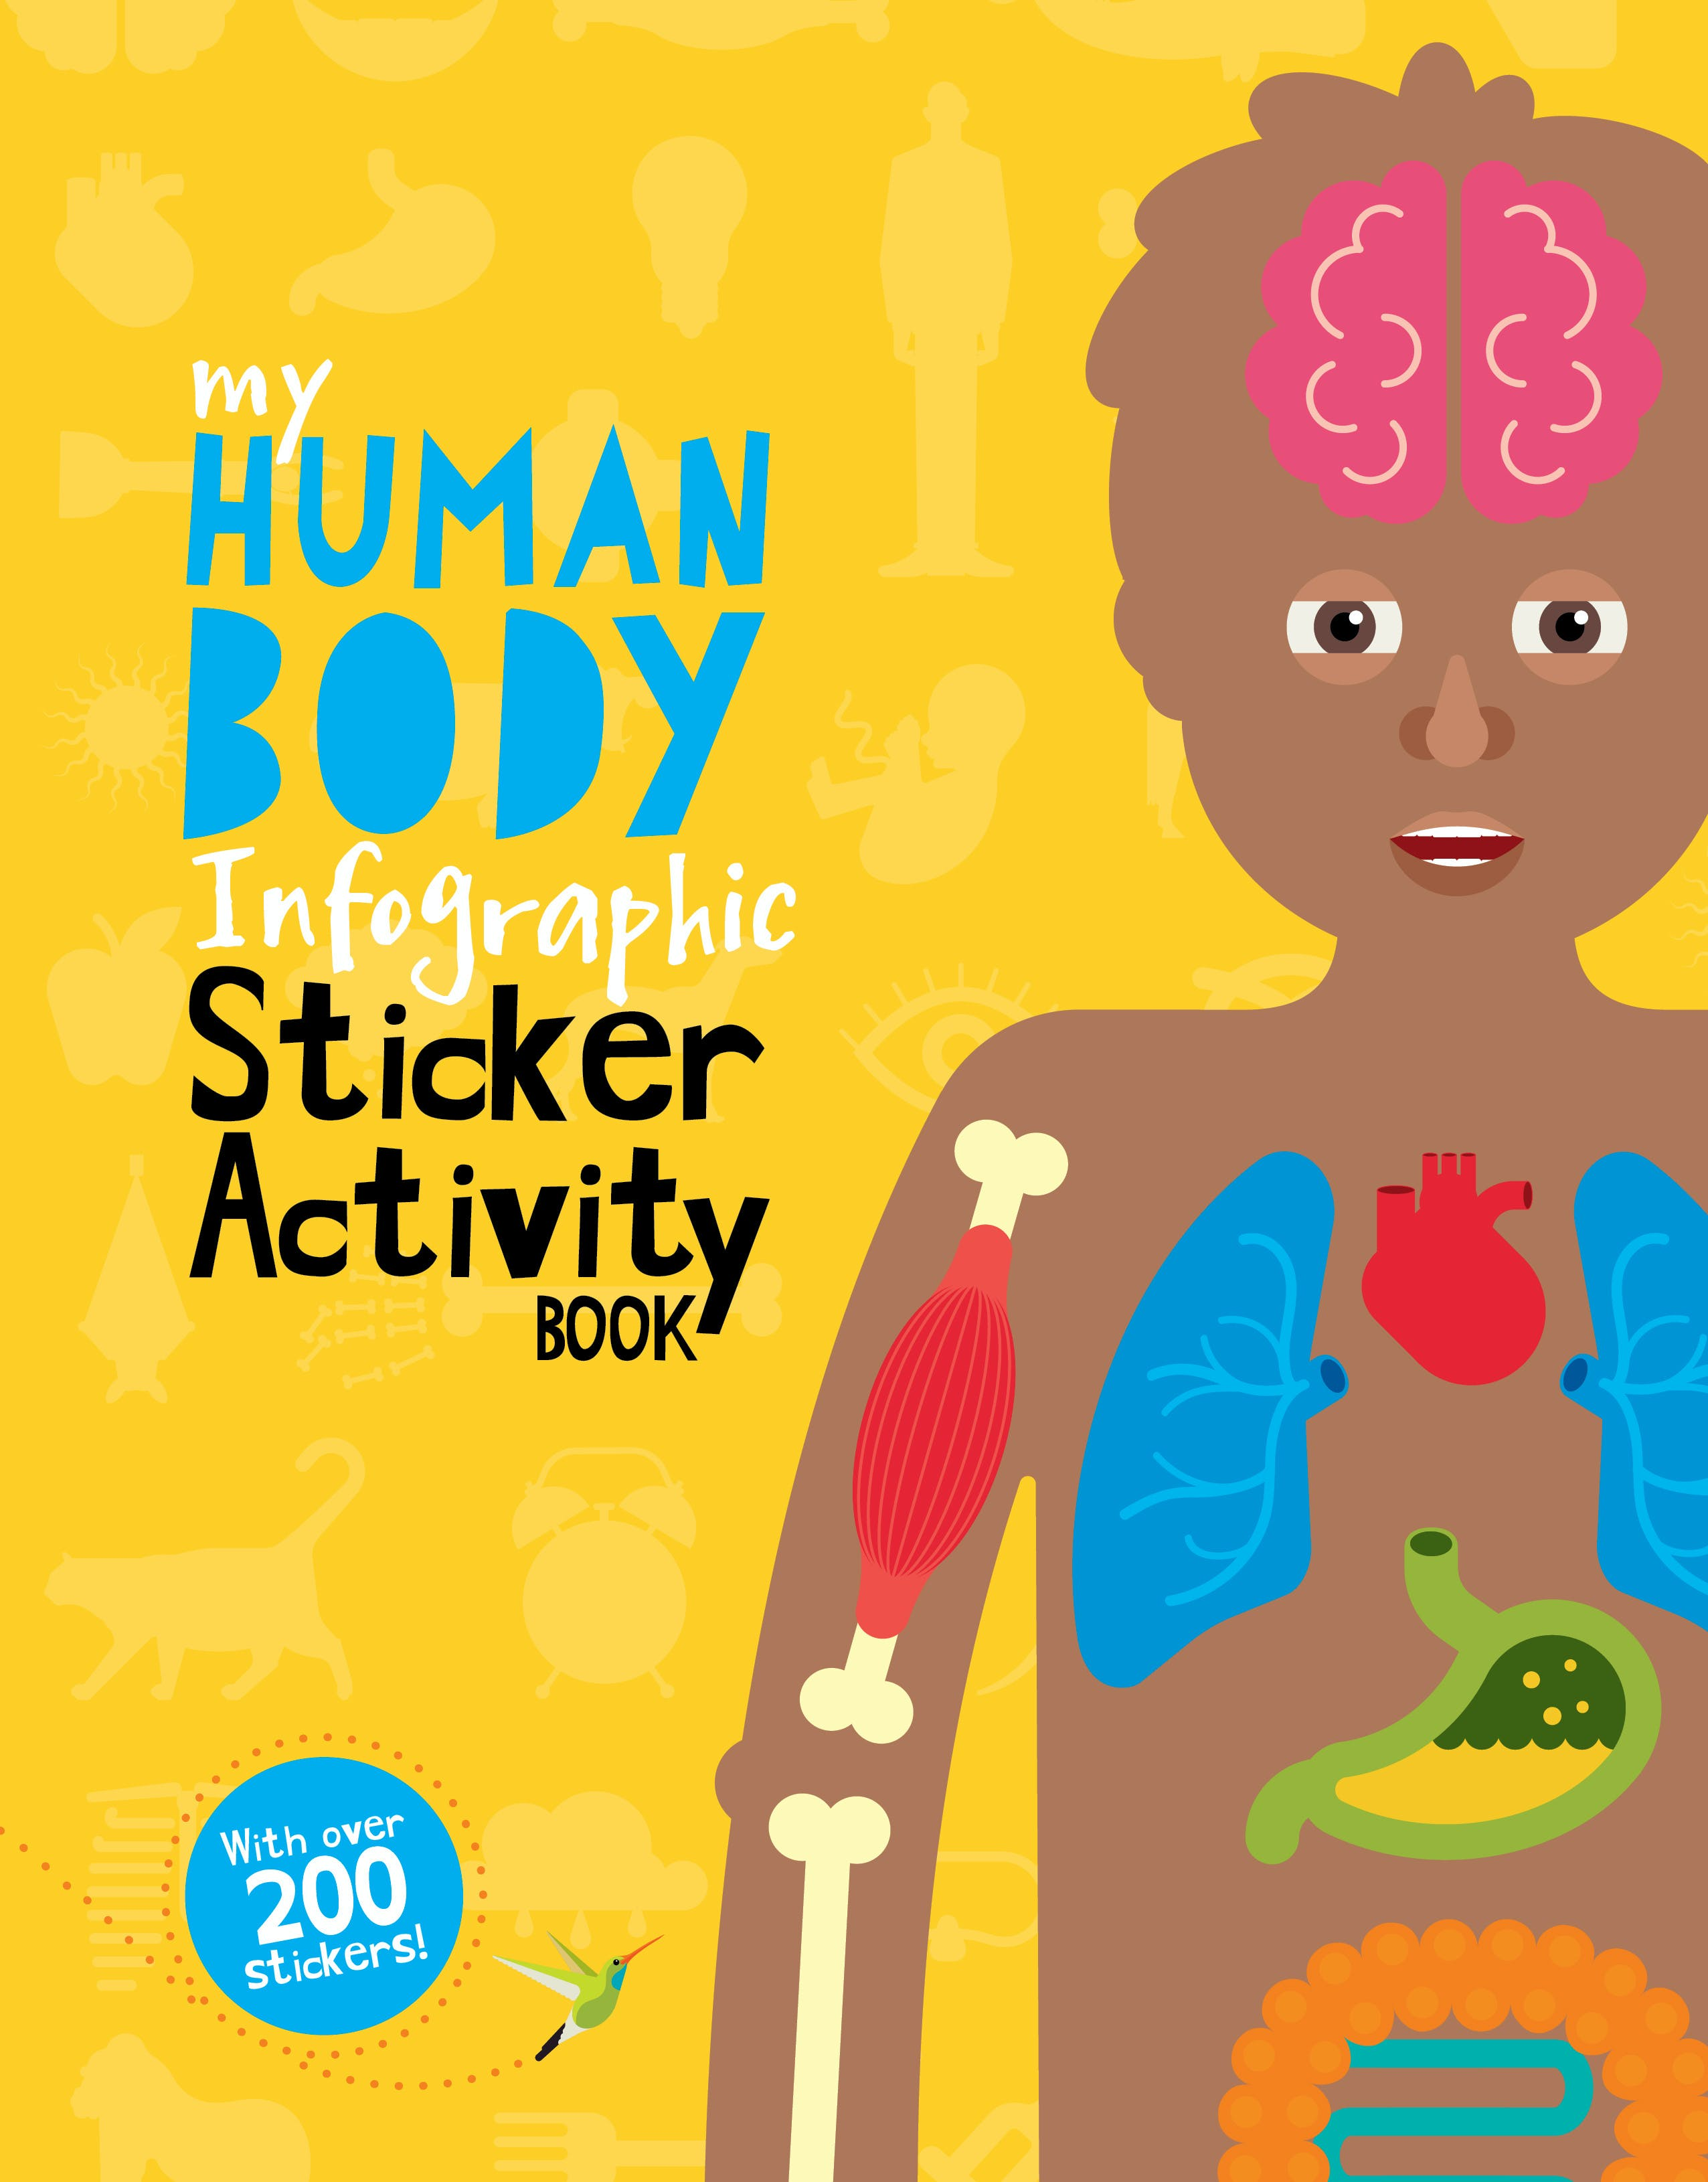 My Human Body Infographic Sticker Activity Book by Jo Dearden